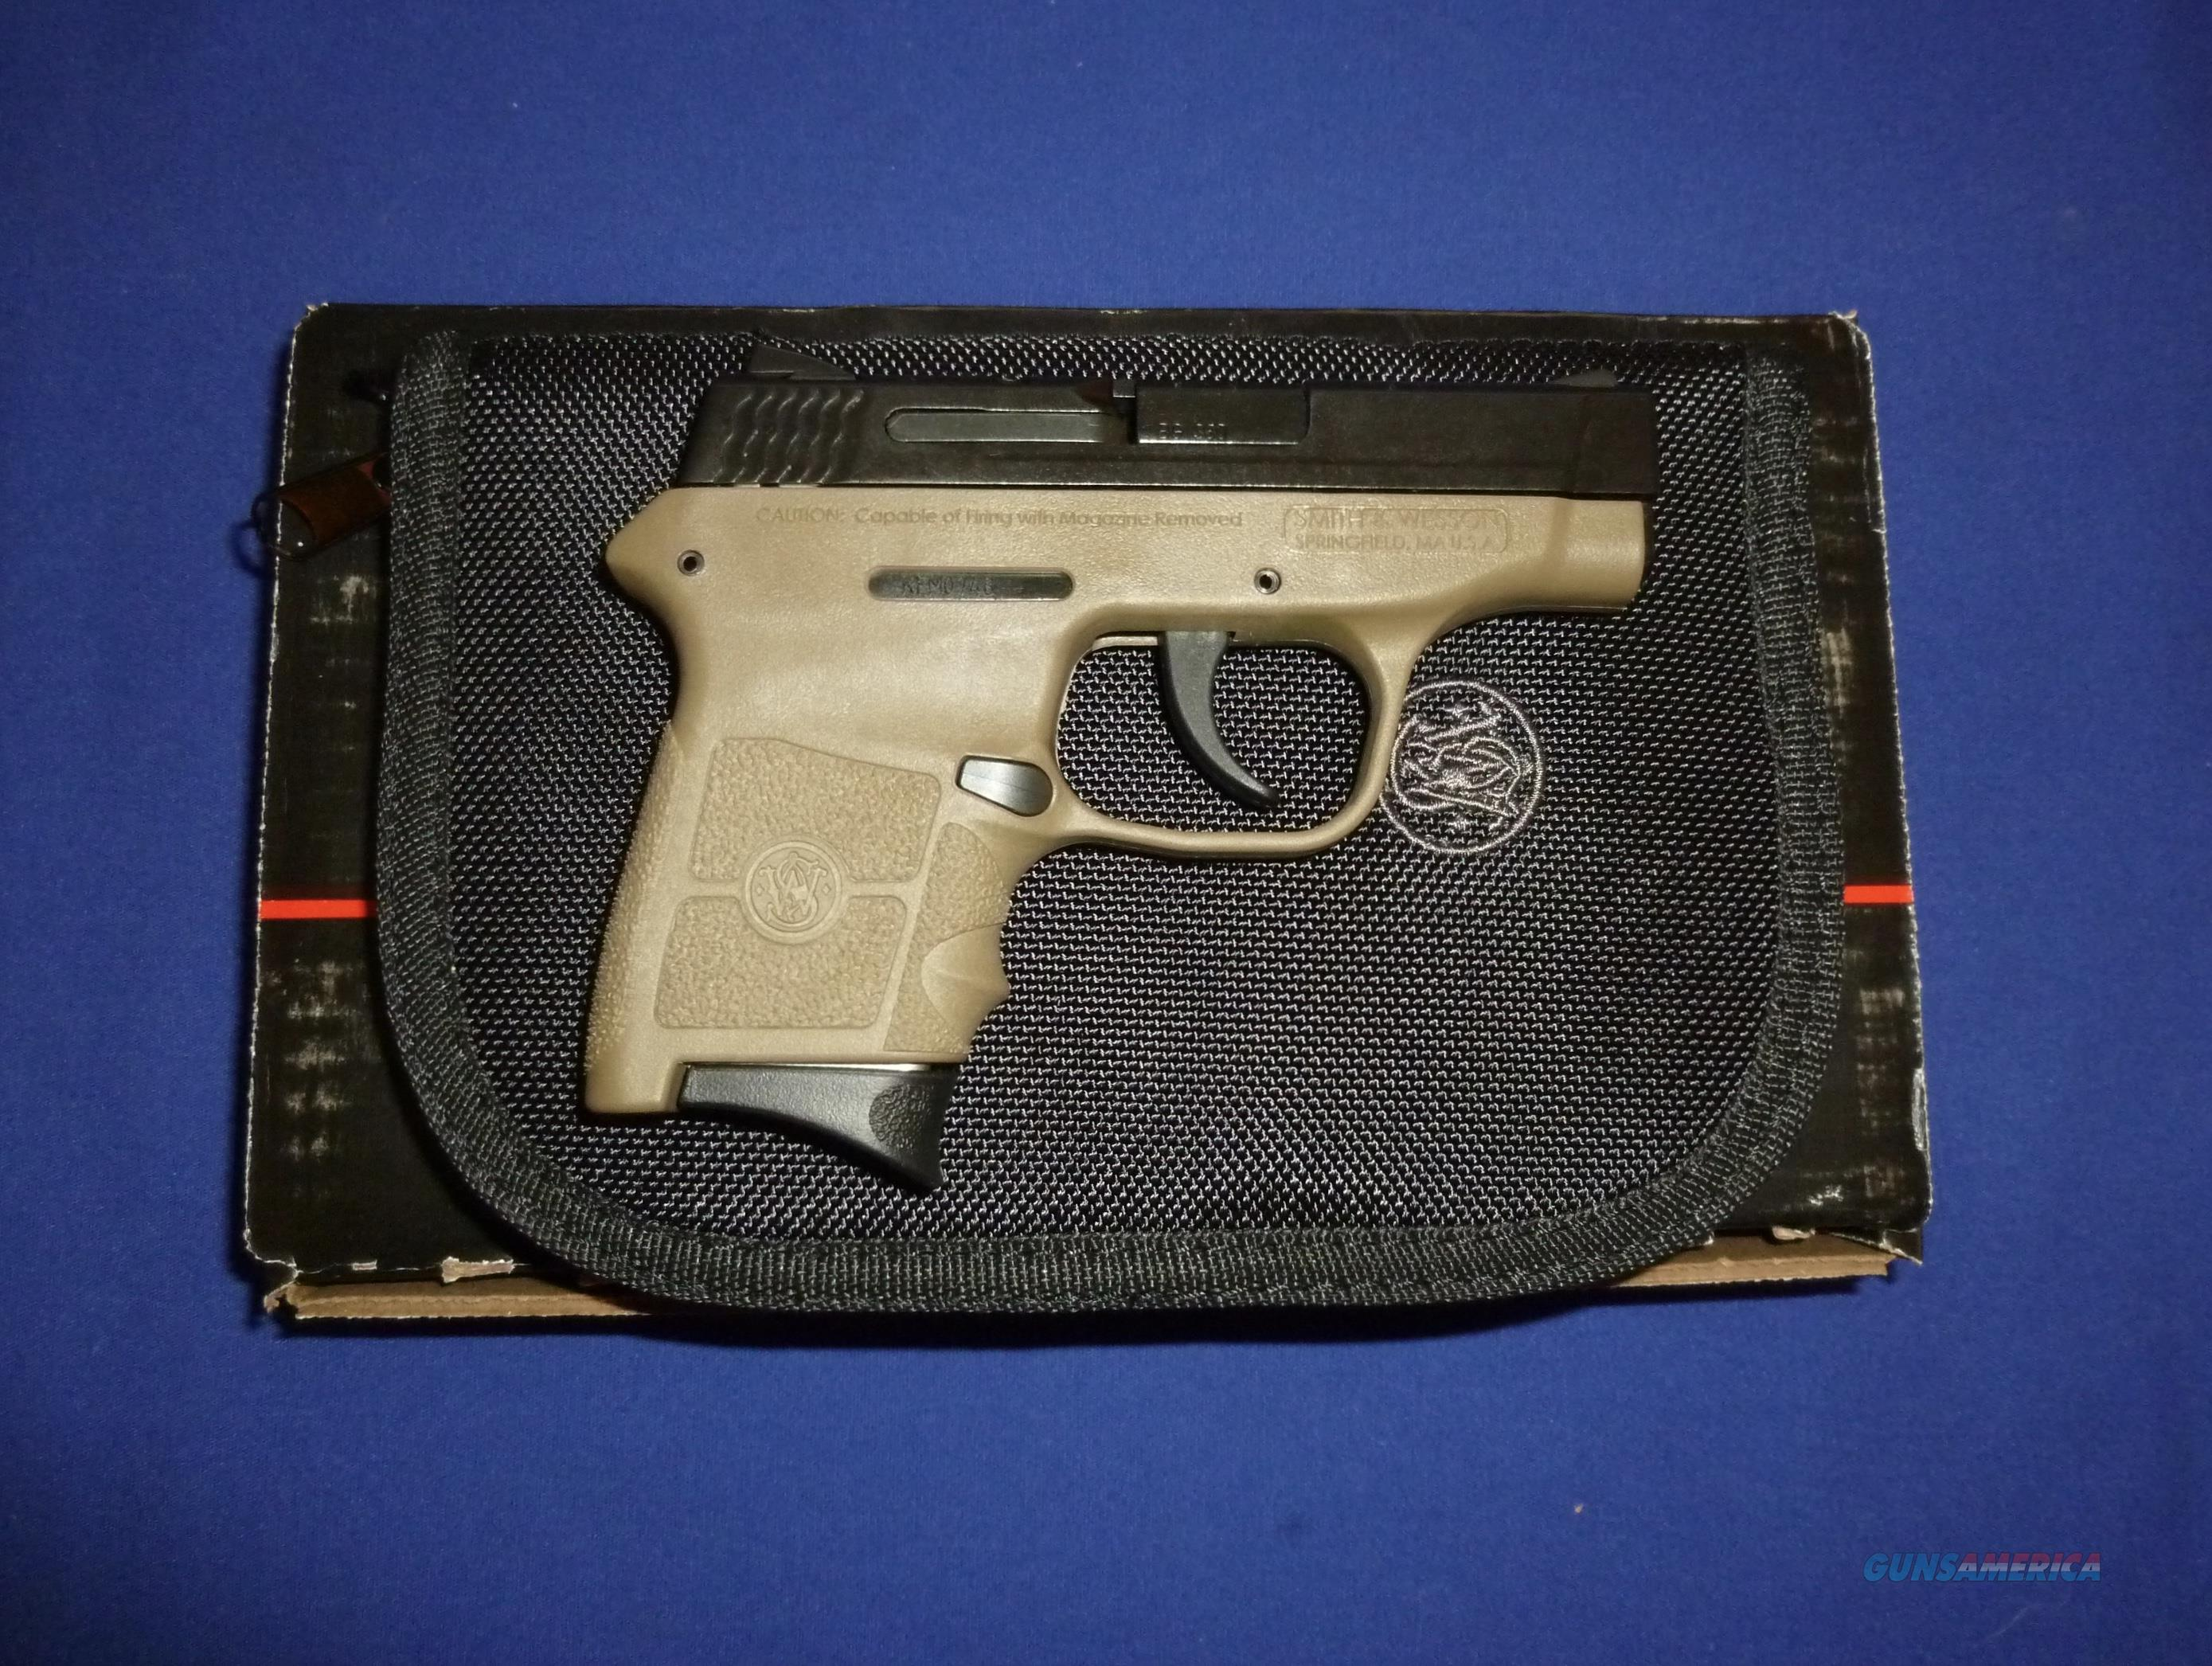 SMITH & WESSON M&P BODYGUARD 380ACP MICRO-COMPACT PISTOL W/FDE FRAME   Guns > Pistols > Smith & Wesson Pistols - Autos > Polymer Frame